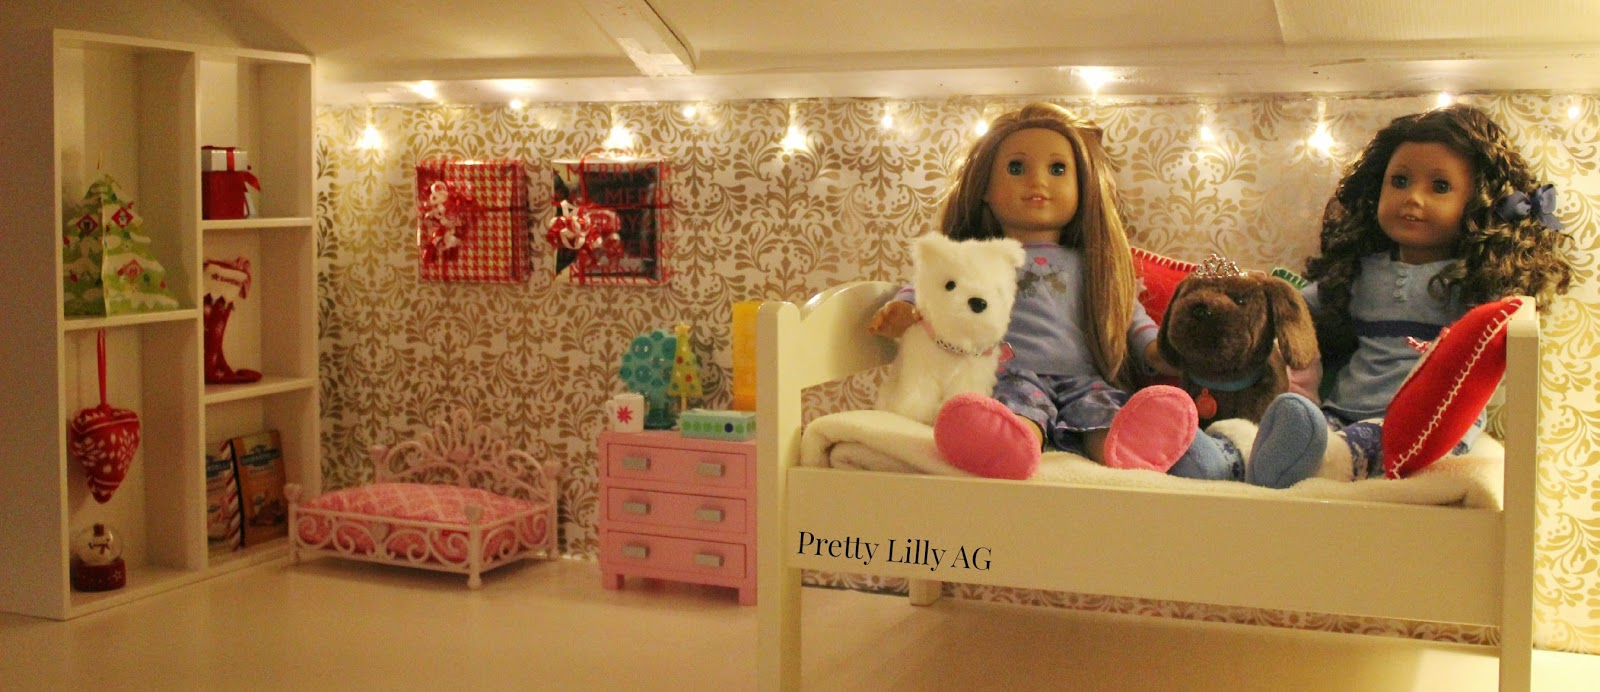 Christmas Doll Bedroom Decorations. Pretty Lilly an American Girl  Christmas Doll Bedroom Decorations